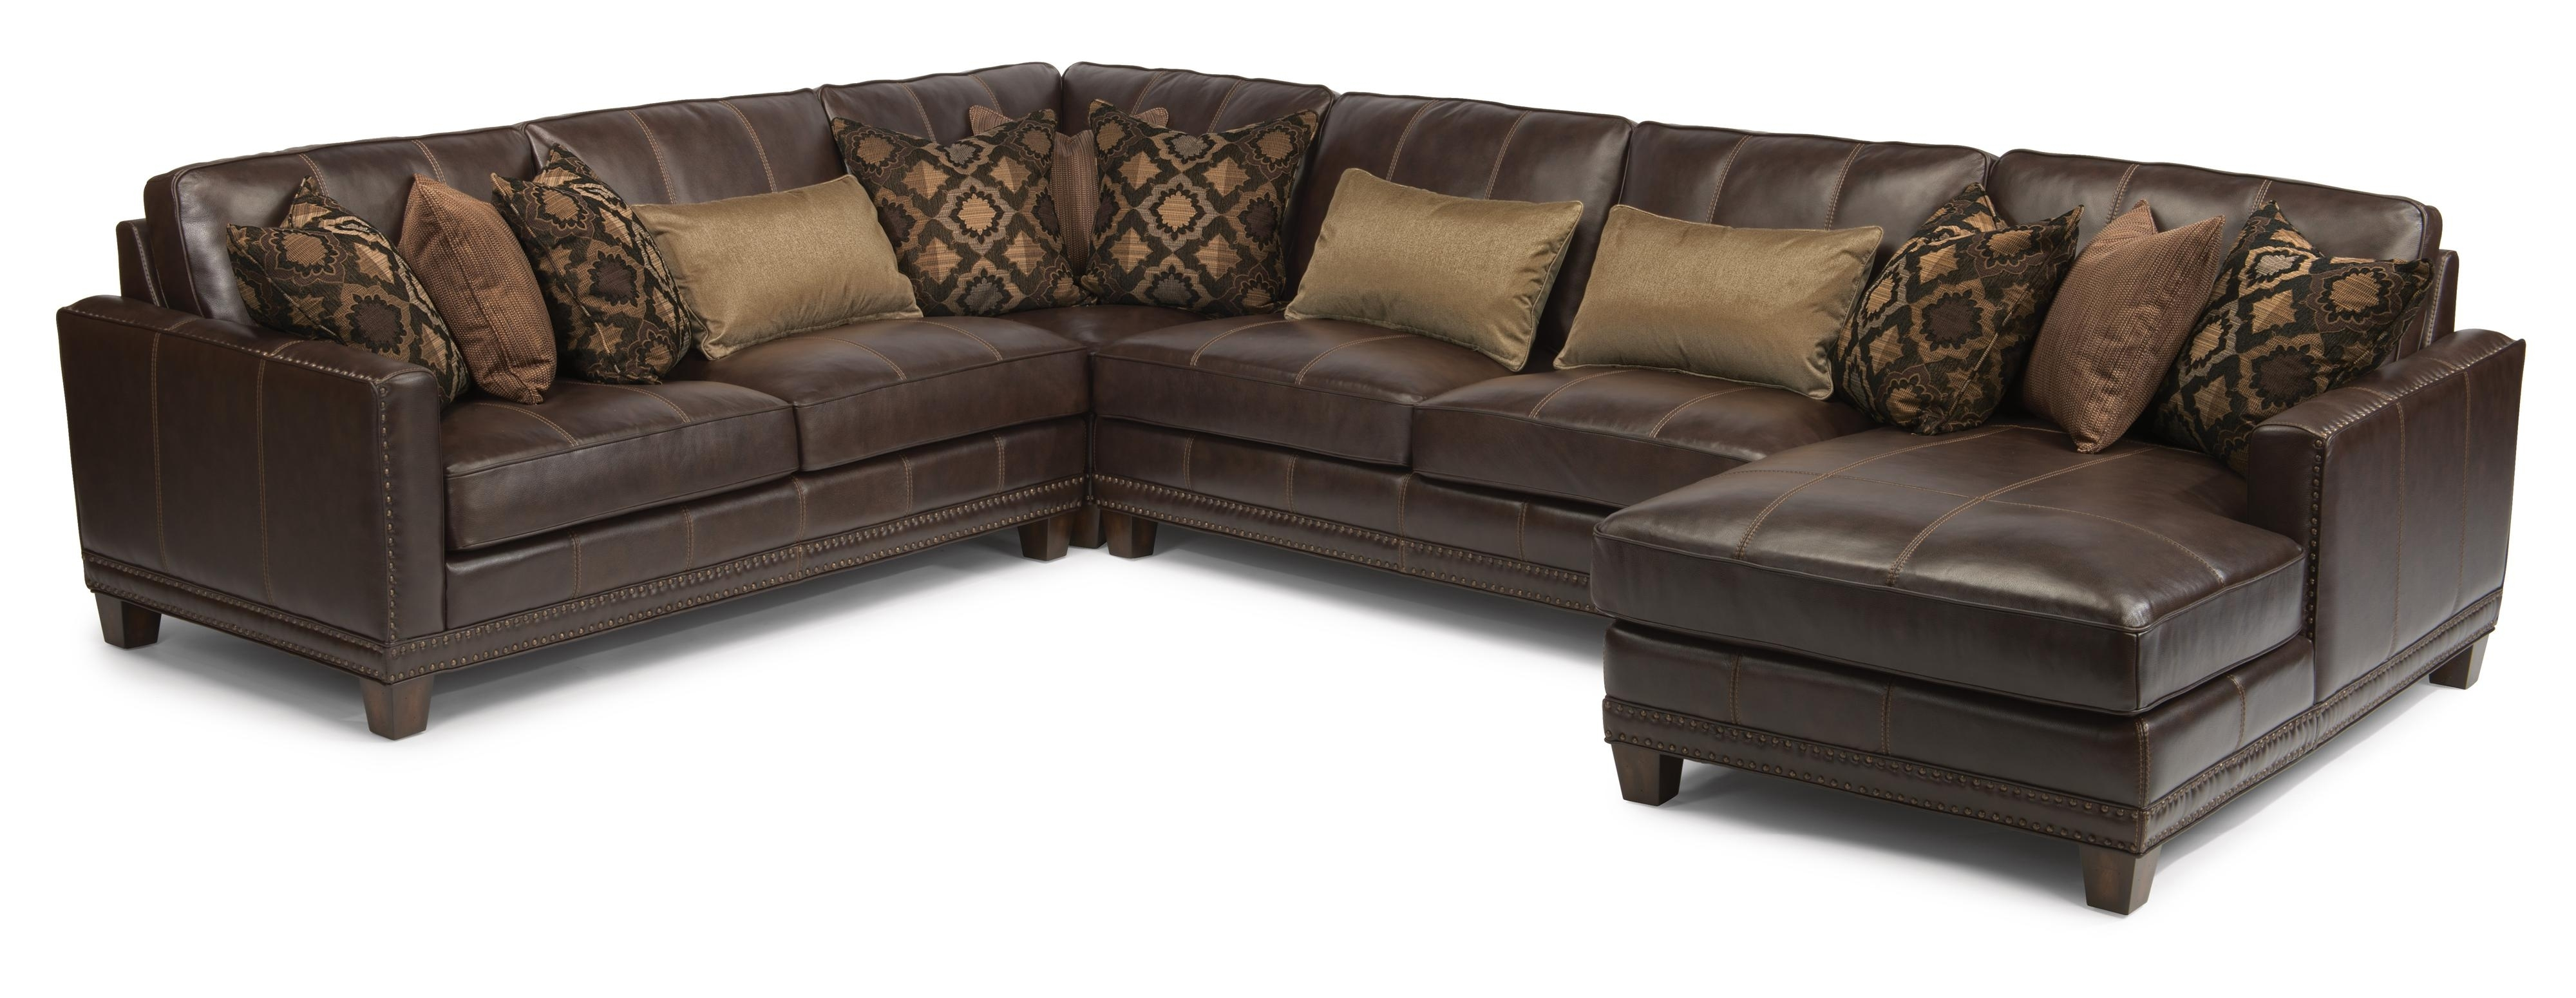 Flexsteel Latitudes – Port Royal Transitional Four Piece Sectional Pertaining To Meyer 3 Piece Sectionals With Raf Chaise (View 18 of 25)